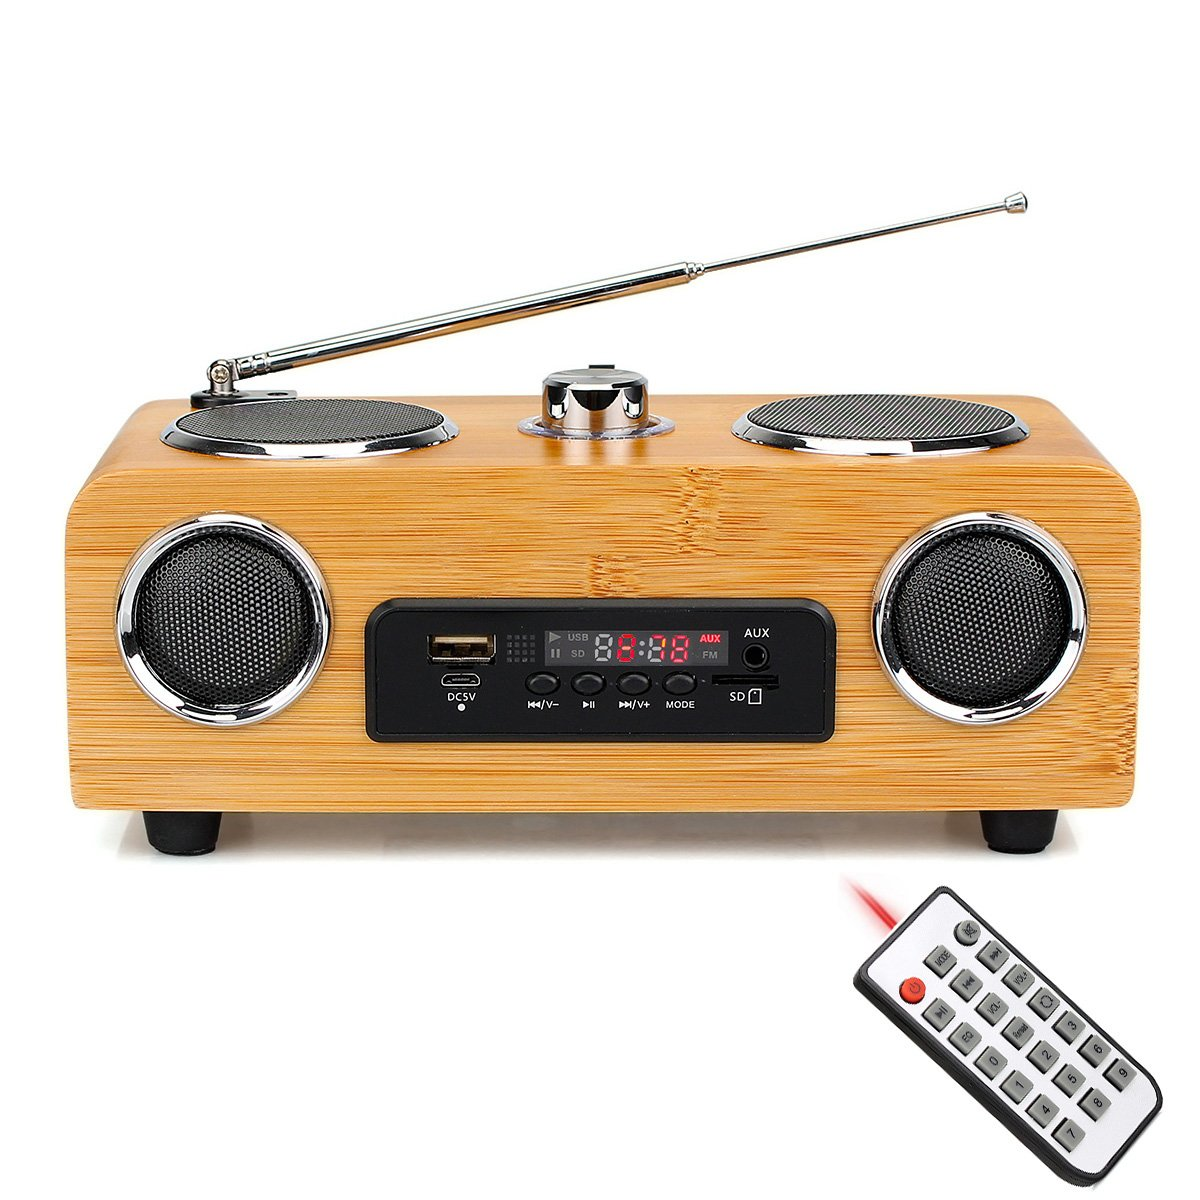 TIVDIO Handmade Bamboo Stereo Multimedia Speaker Classical Radio with MP3 Player Remote Control